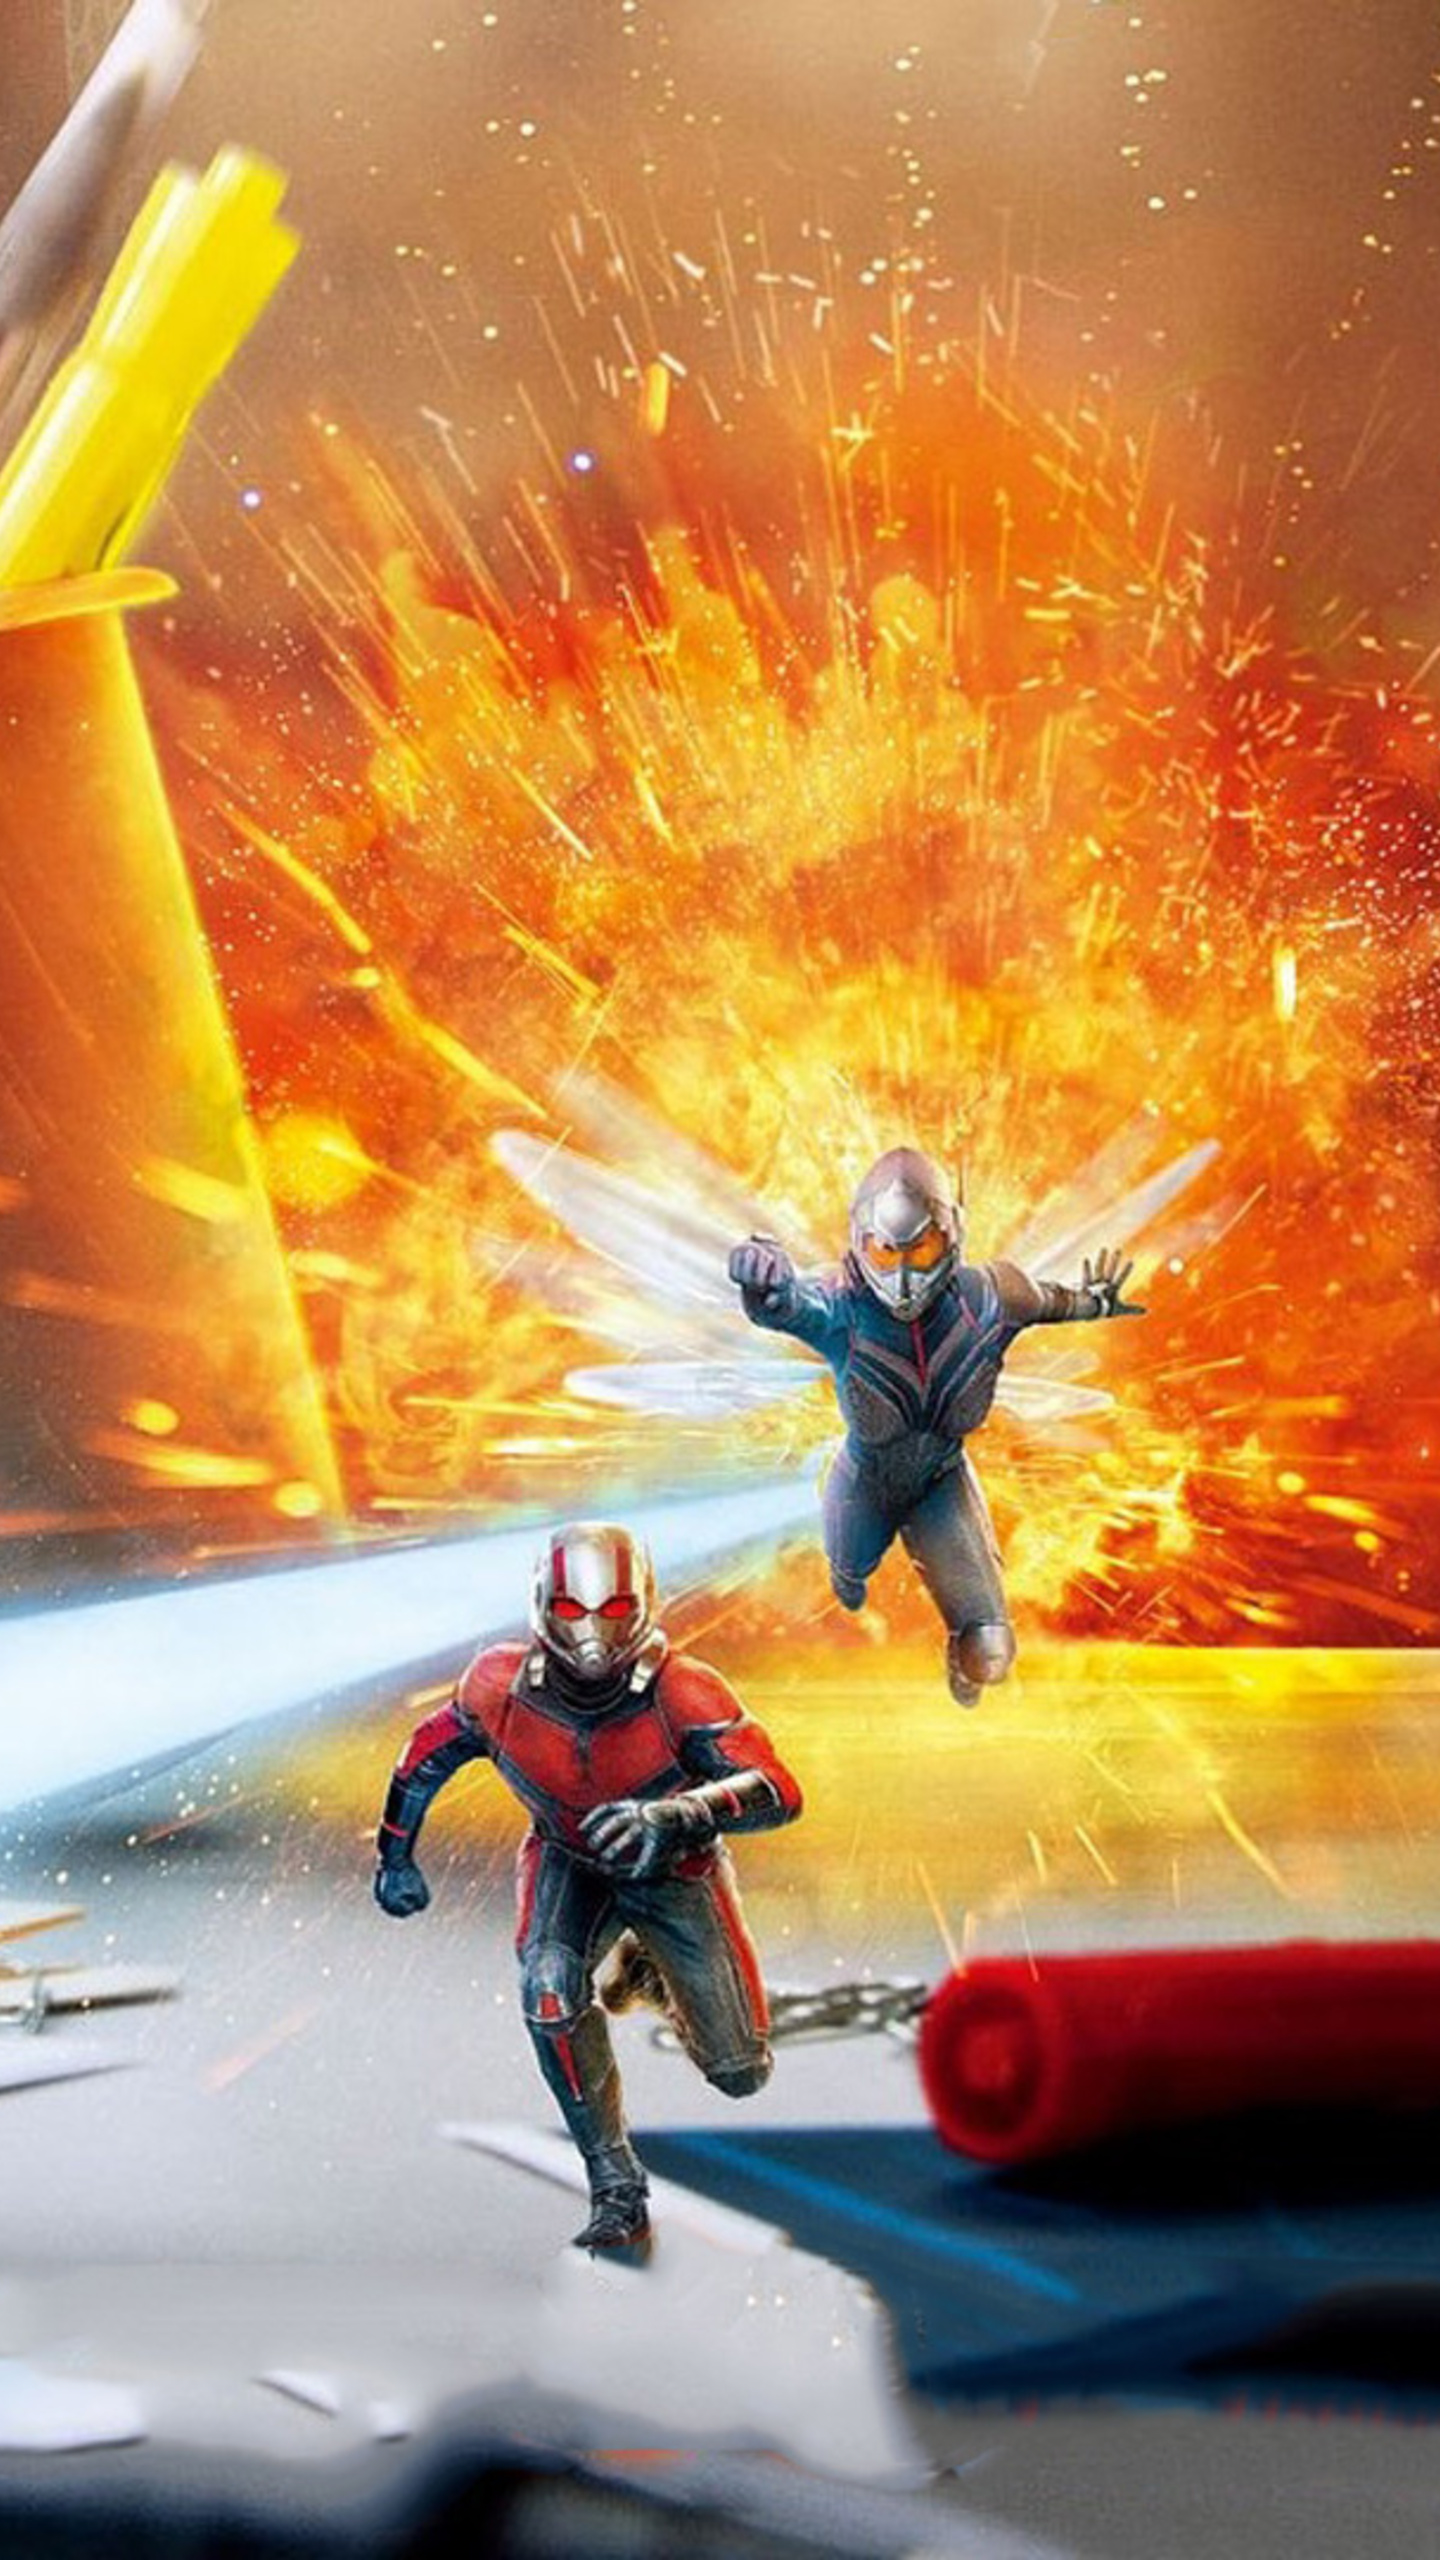 1440x2560 Ant Man And The Wasp Poster 2018 Samsung Galaxy